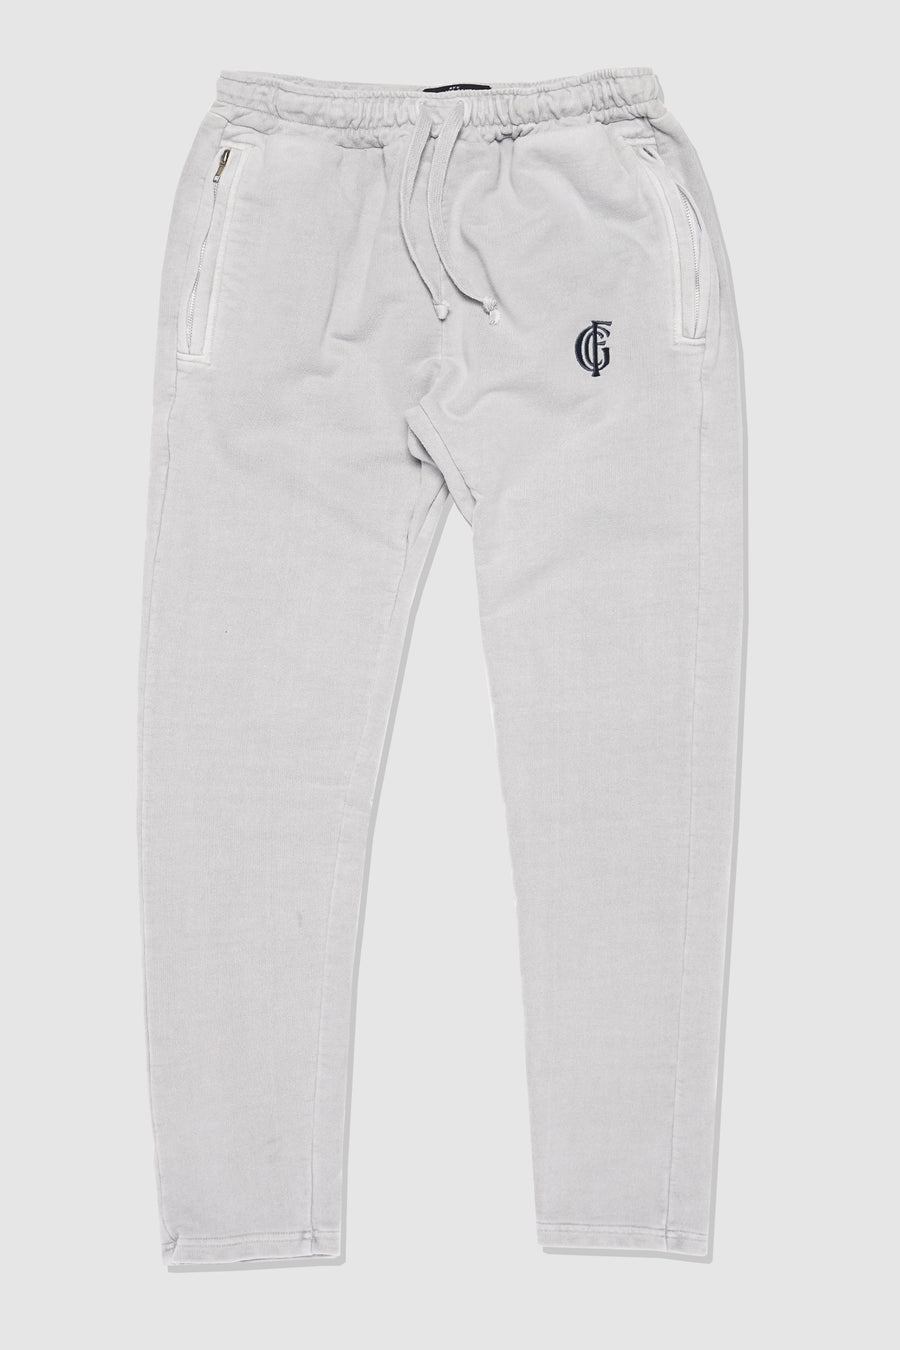 LEISURE MONOGRAM PANTS